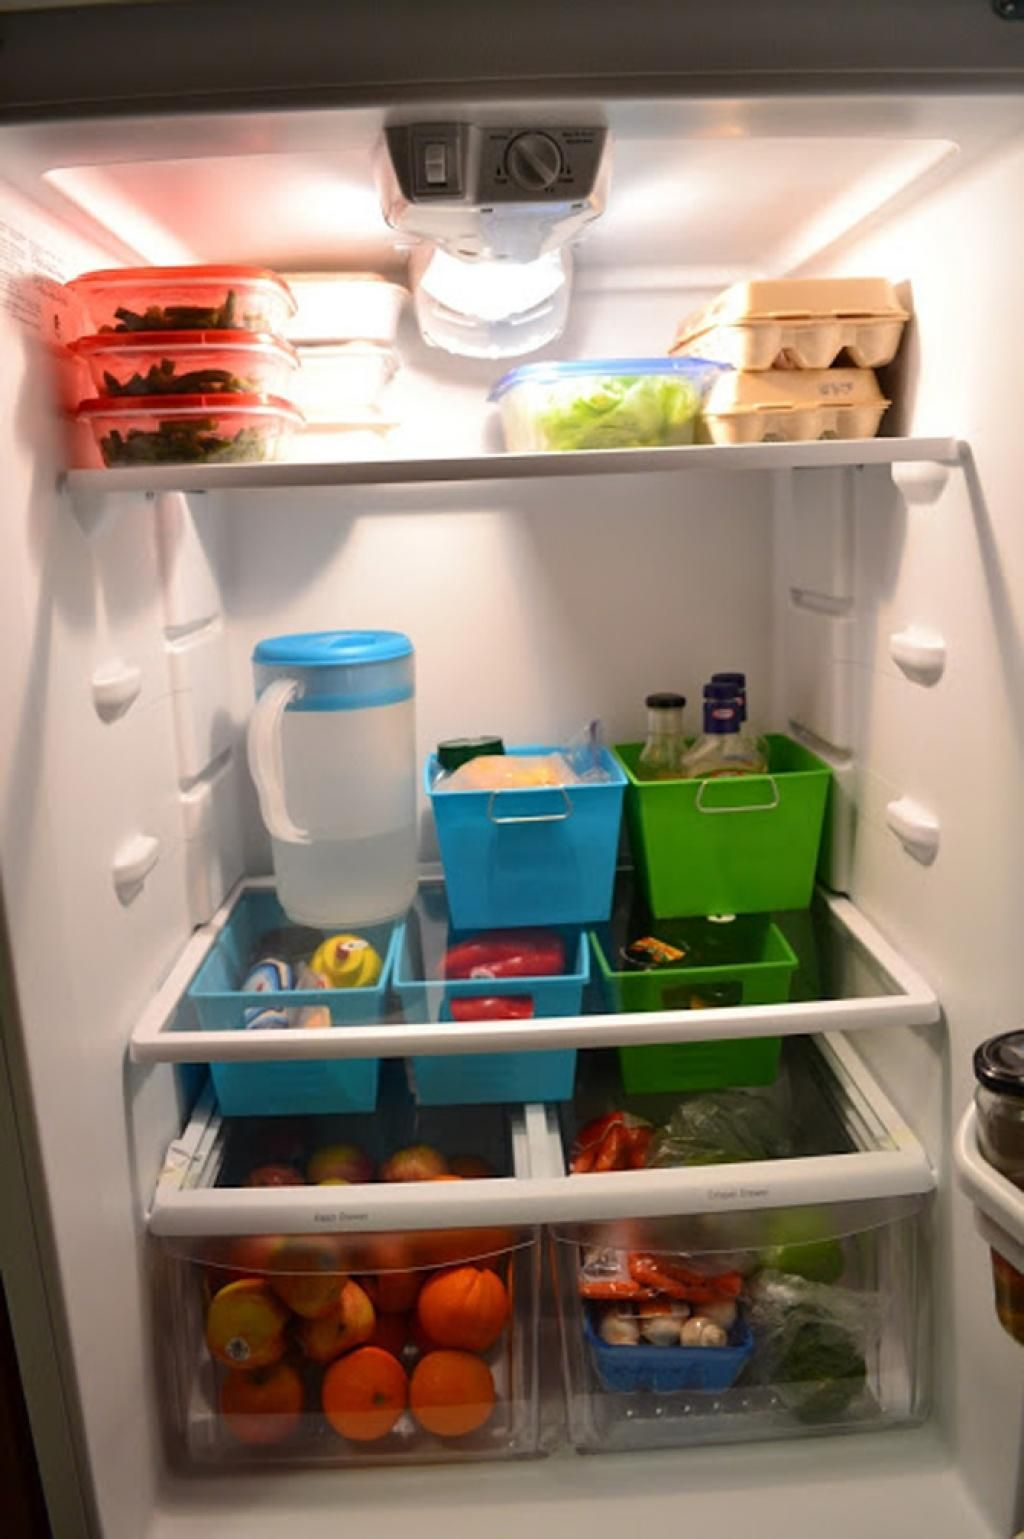 2 Reorganize Your Fridge Simphome com